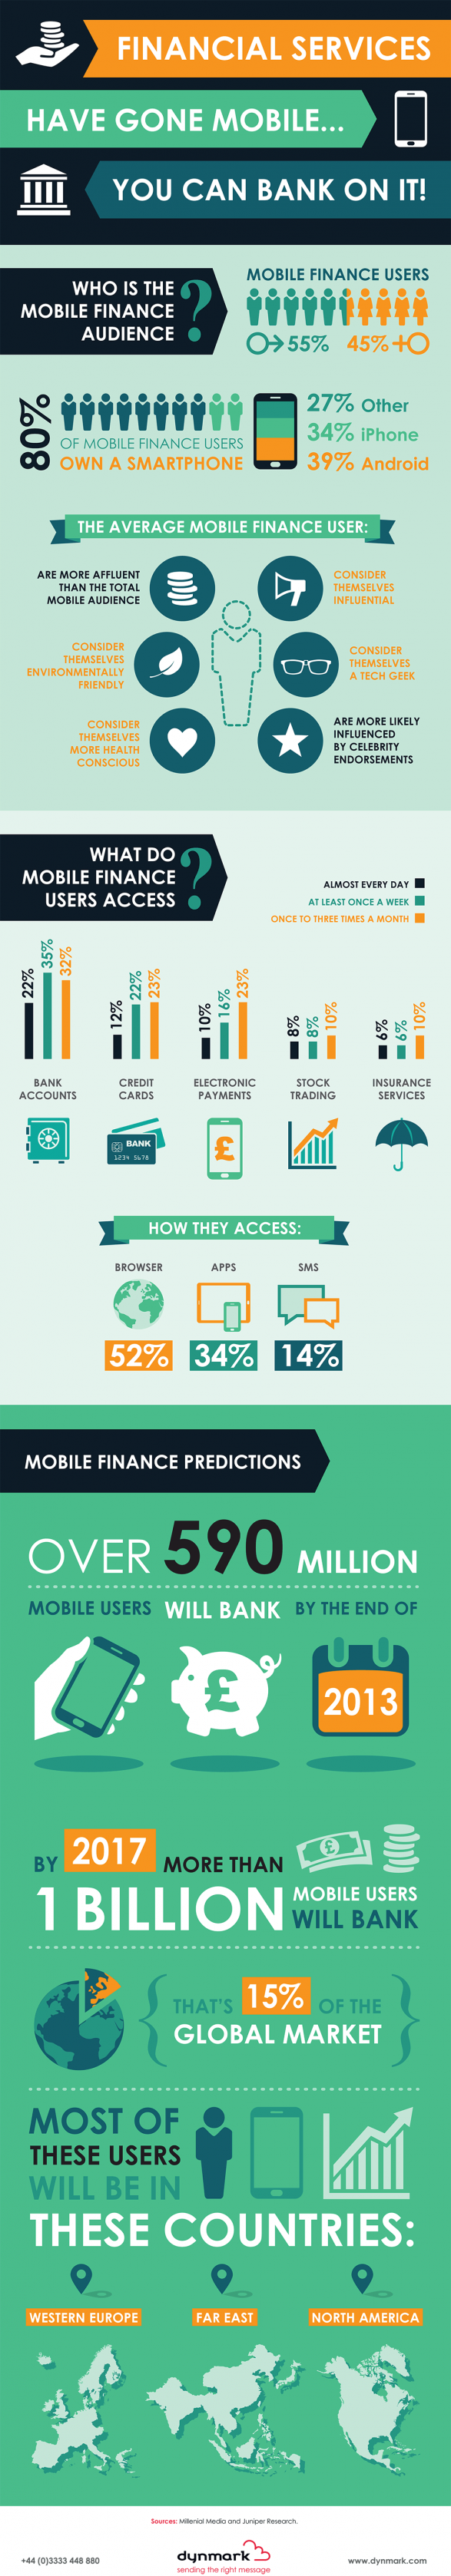 Financial services have gone mobile... you can bank on it!